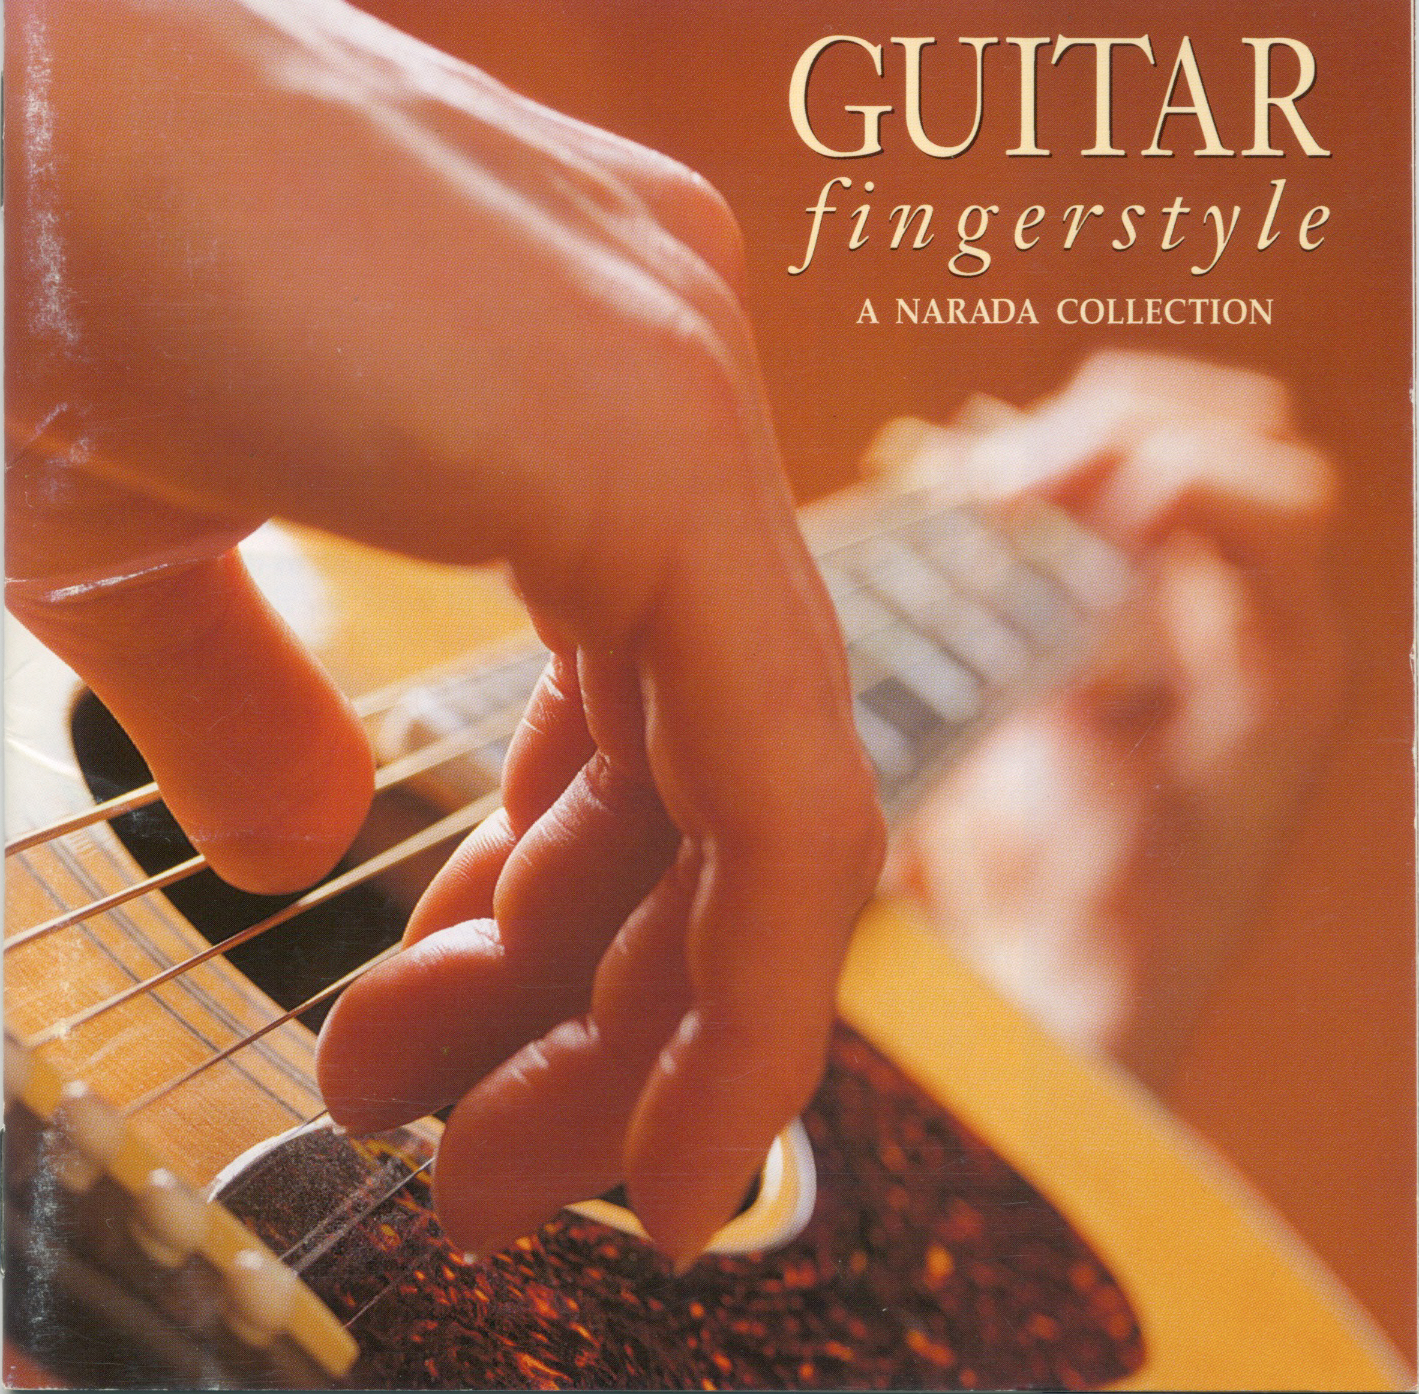 Guitar Fingerstyle